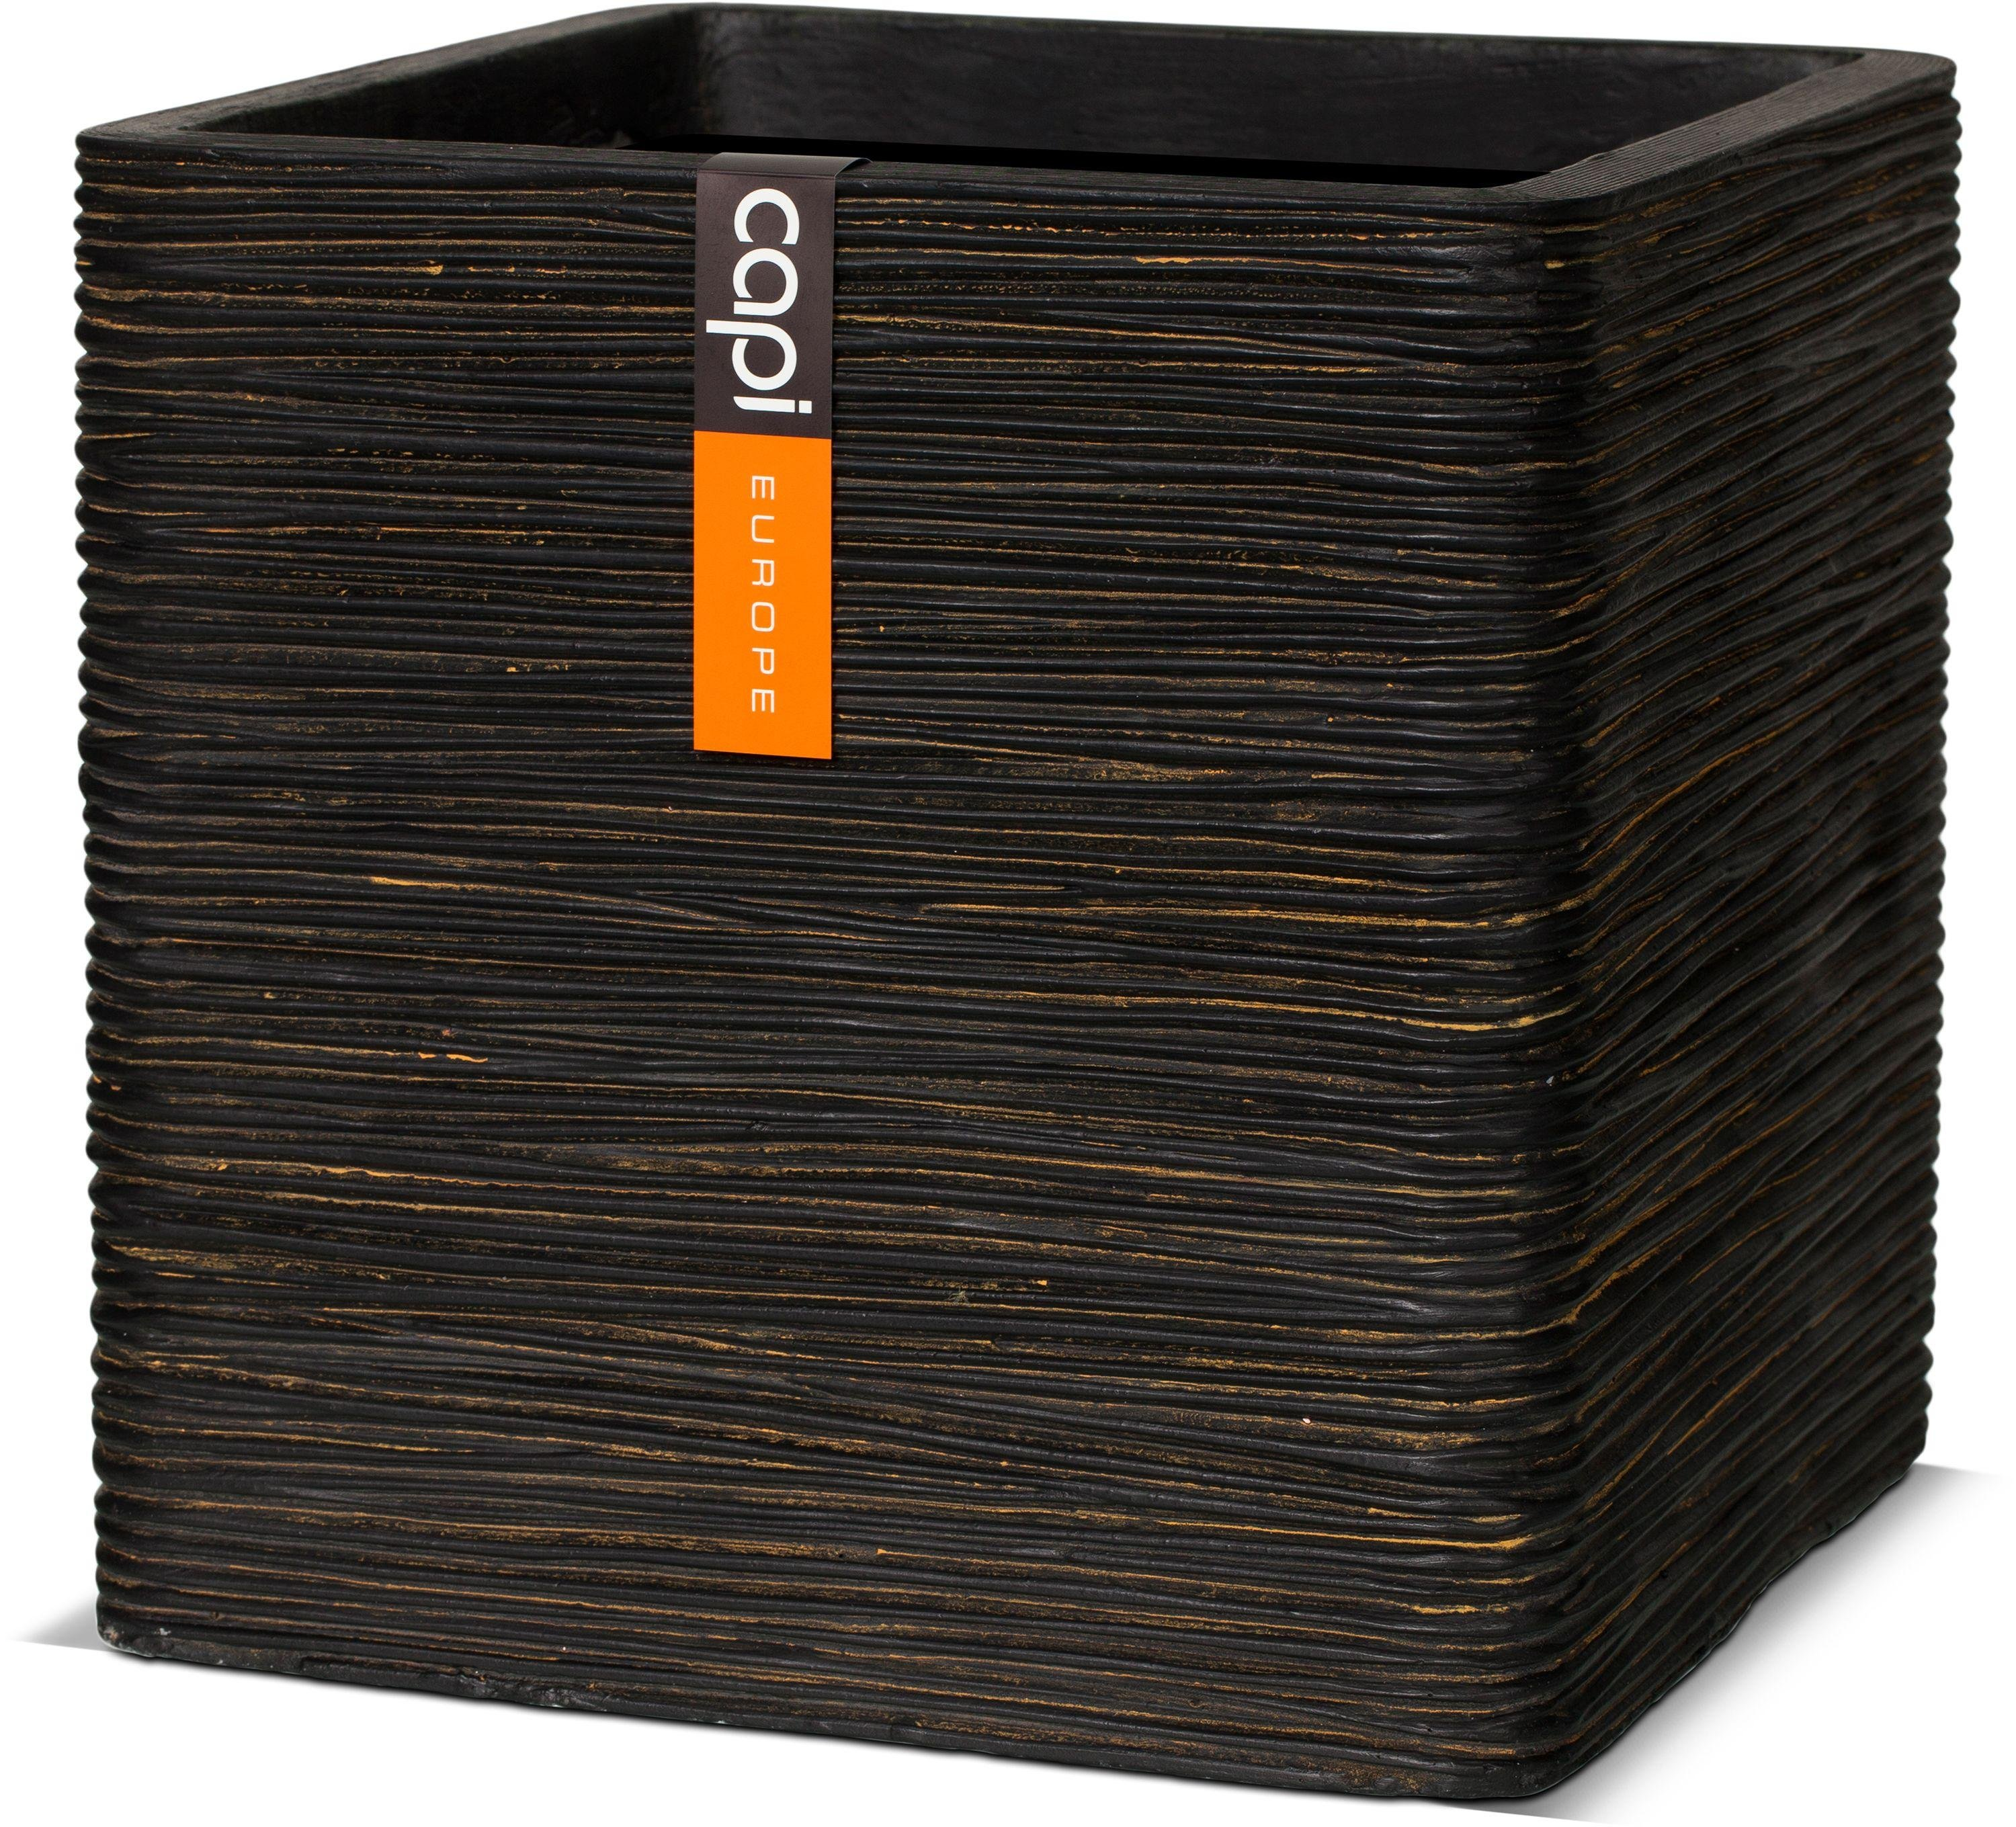 Image of Capi - Nature Brown Ribbed Square Planter - 30cm